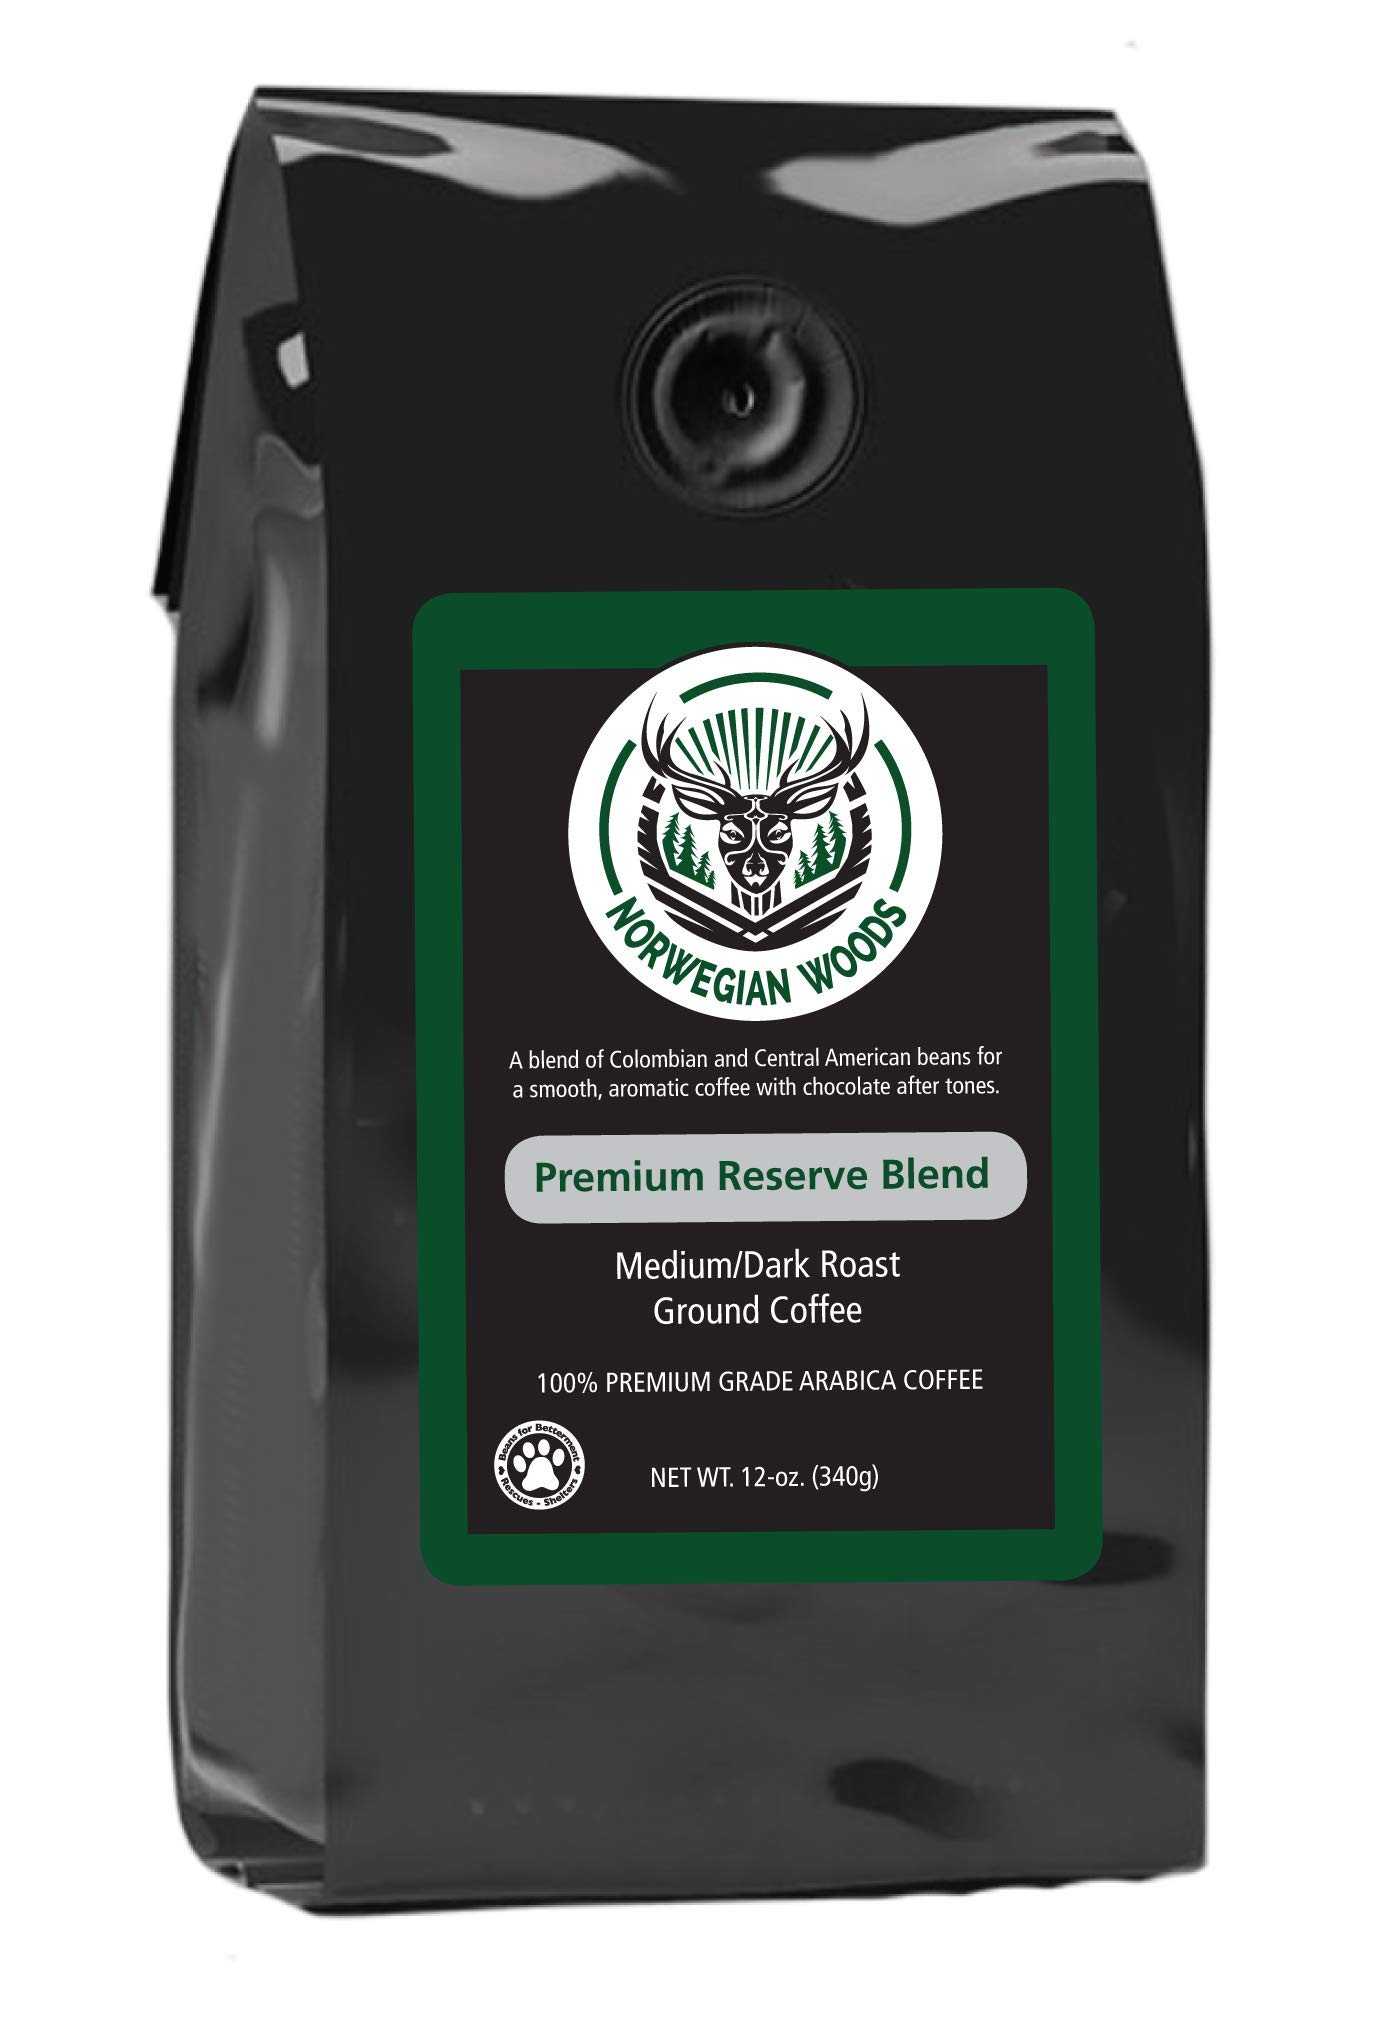 Ground Coffee by Norwegian Woods Coffee, Premium Reserve Blend, Great and Smooth Tasting Medium-Dark Roast Blend, 12 Ounce Bag, 100% Premium Arabica Beans